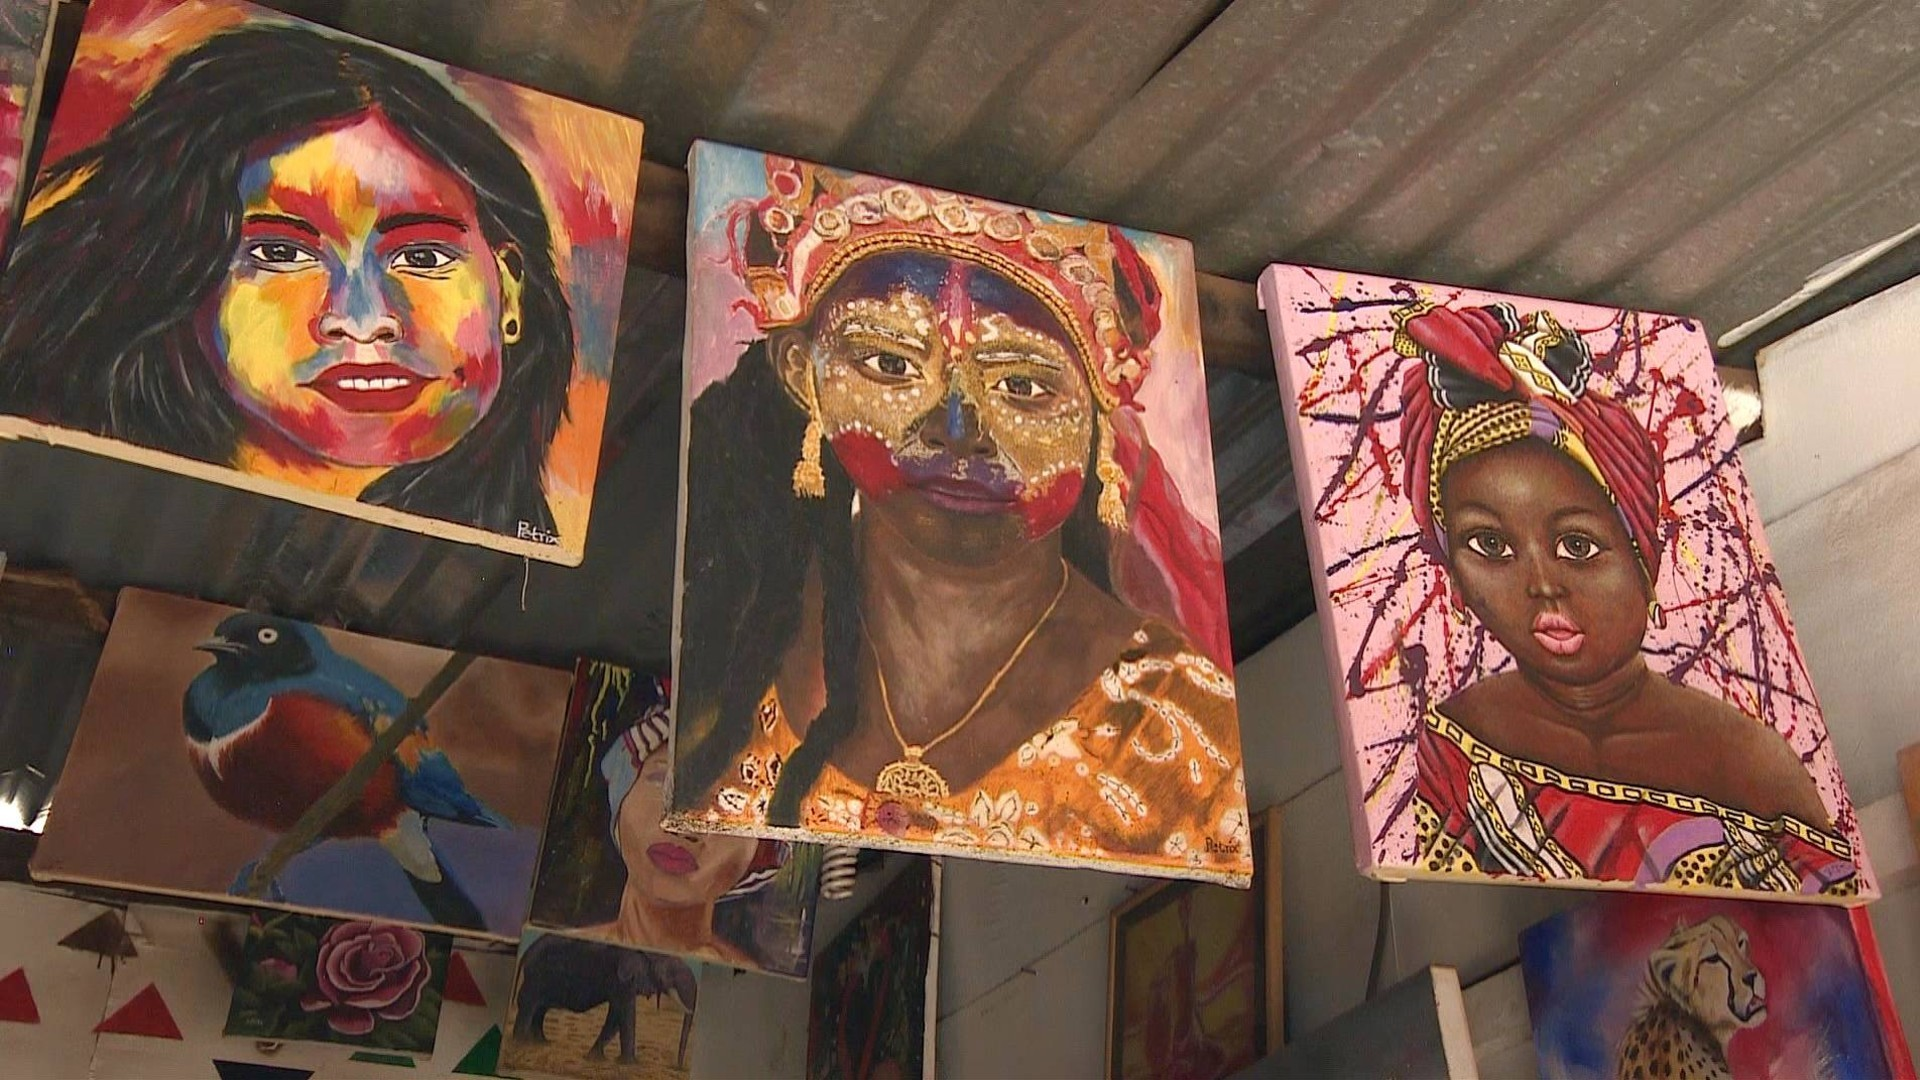 East Africa's booming art scene draws global interest | News | Al ...